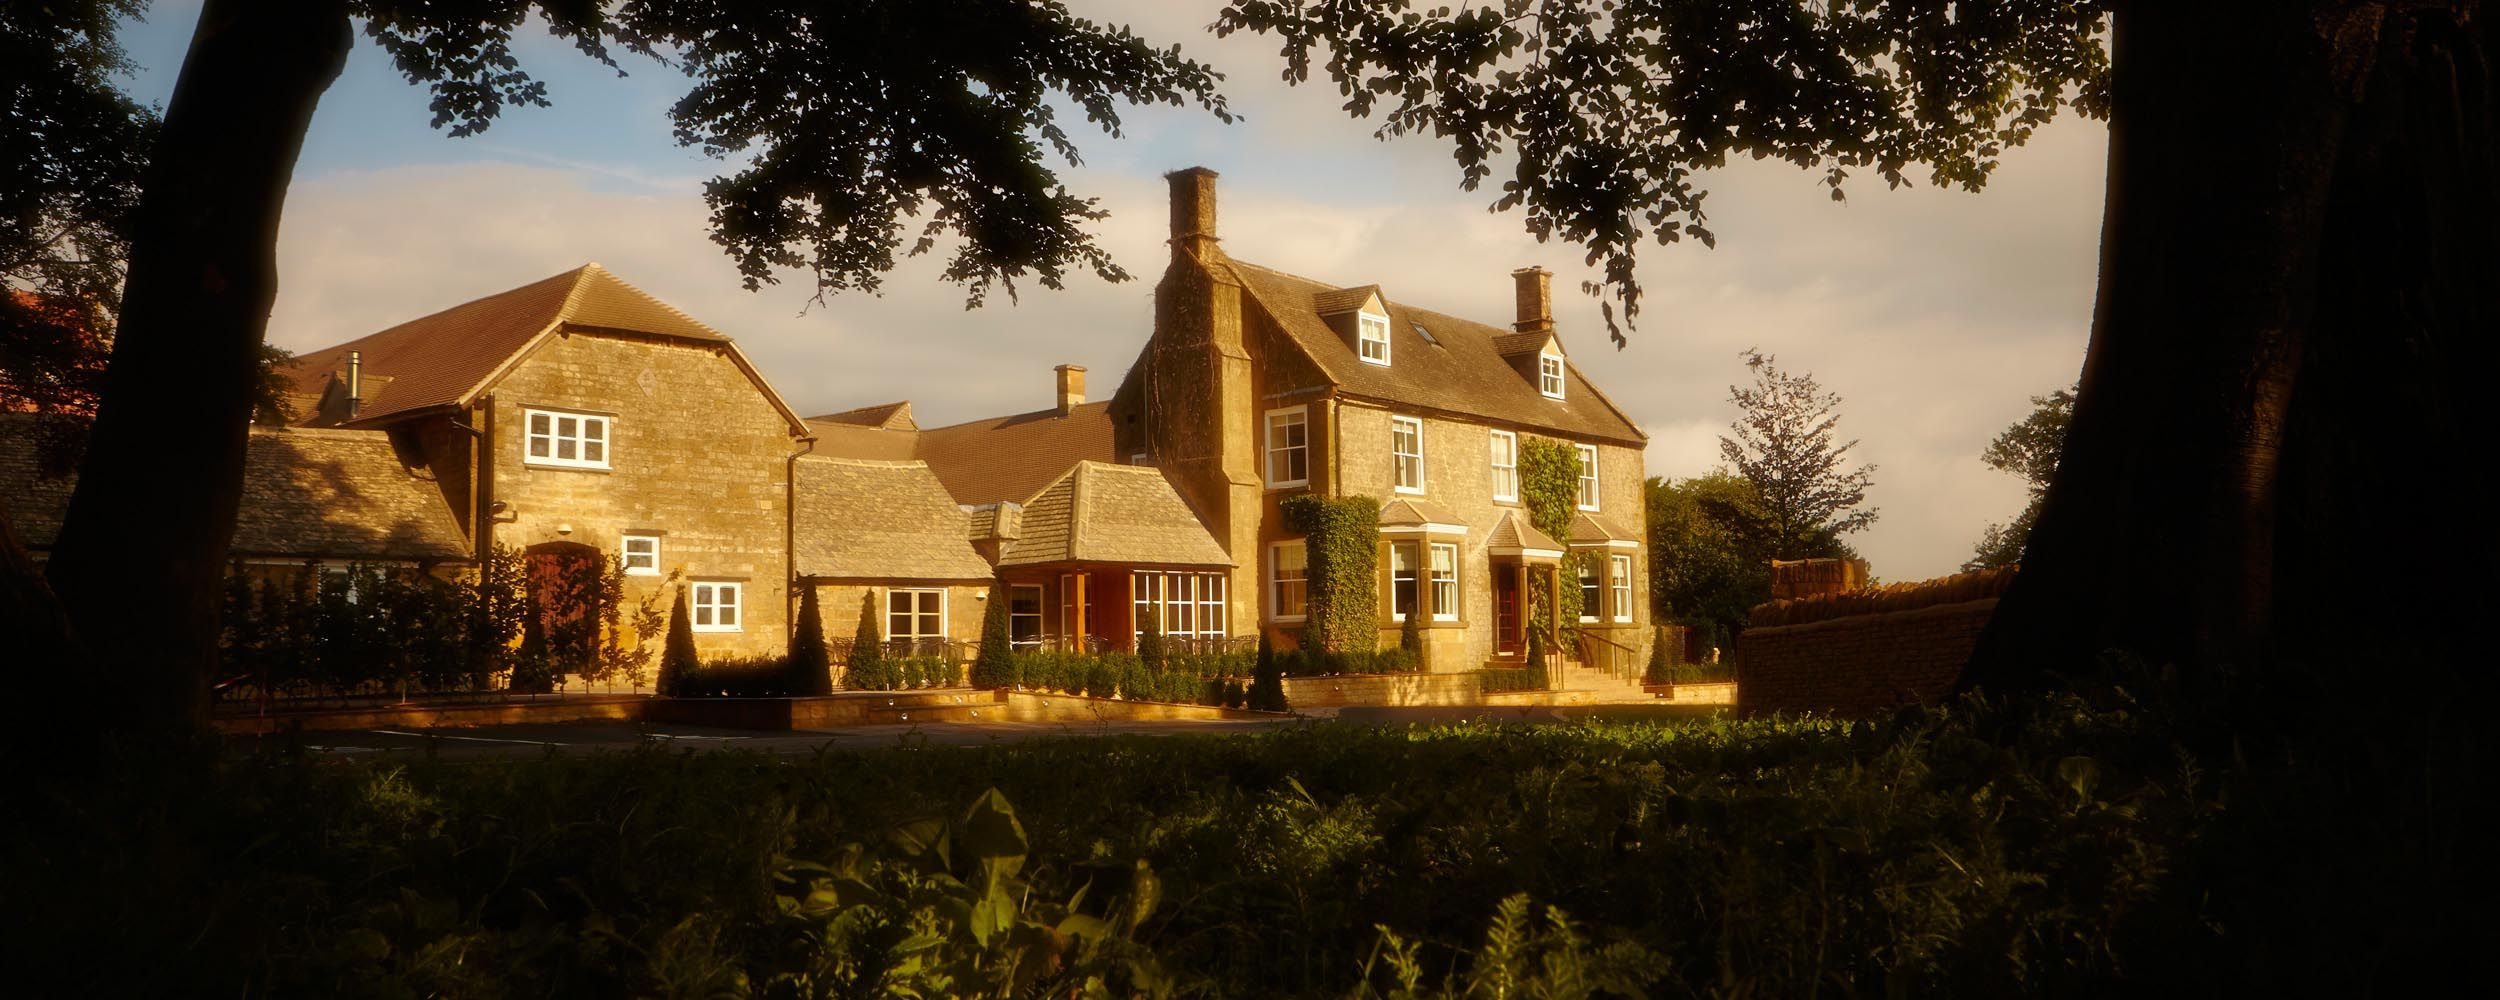 Dormy House Hotel Spa Luxury In The Cotswolds Broadway